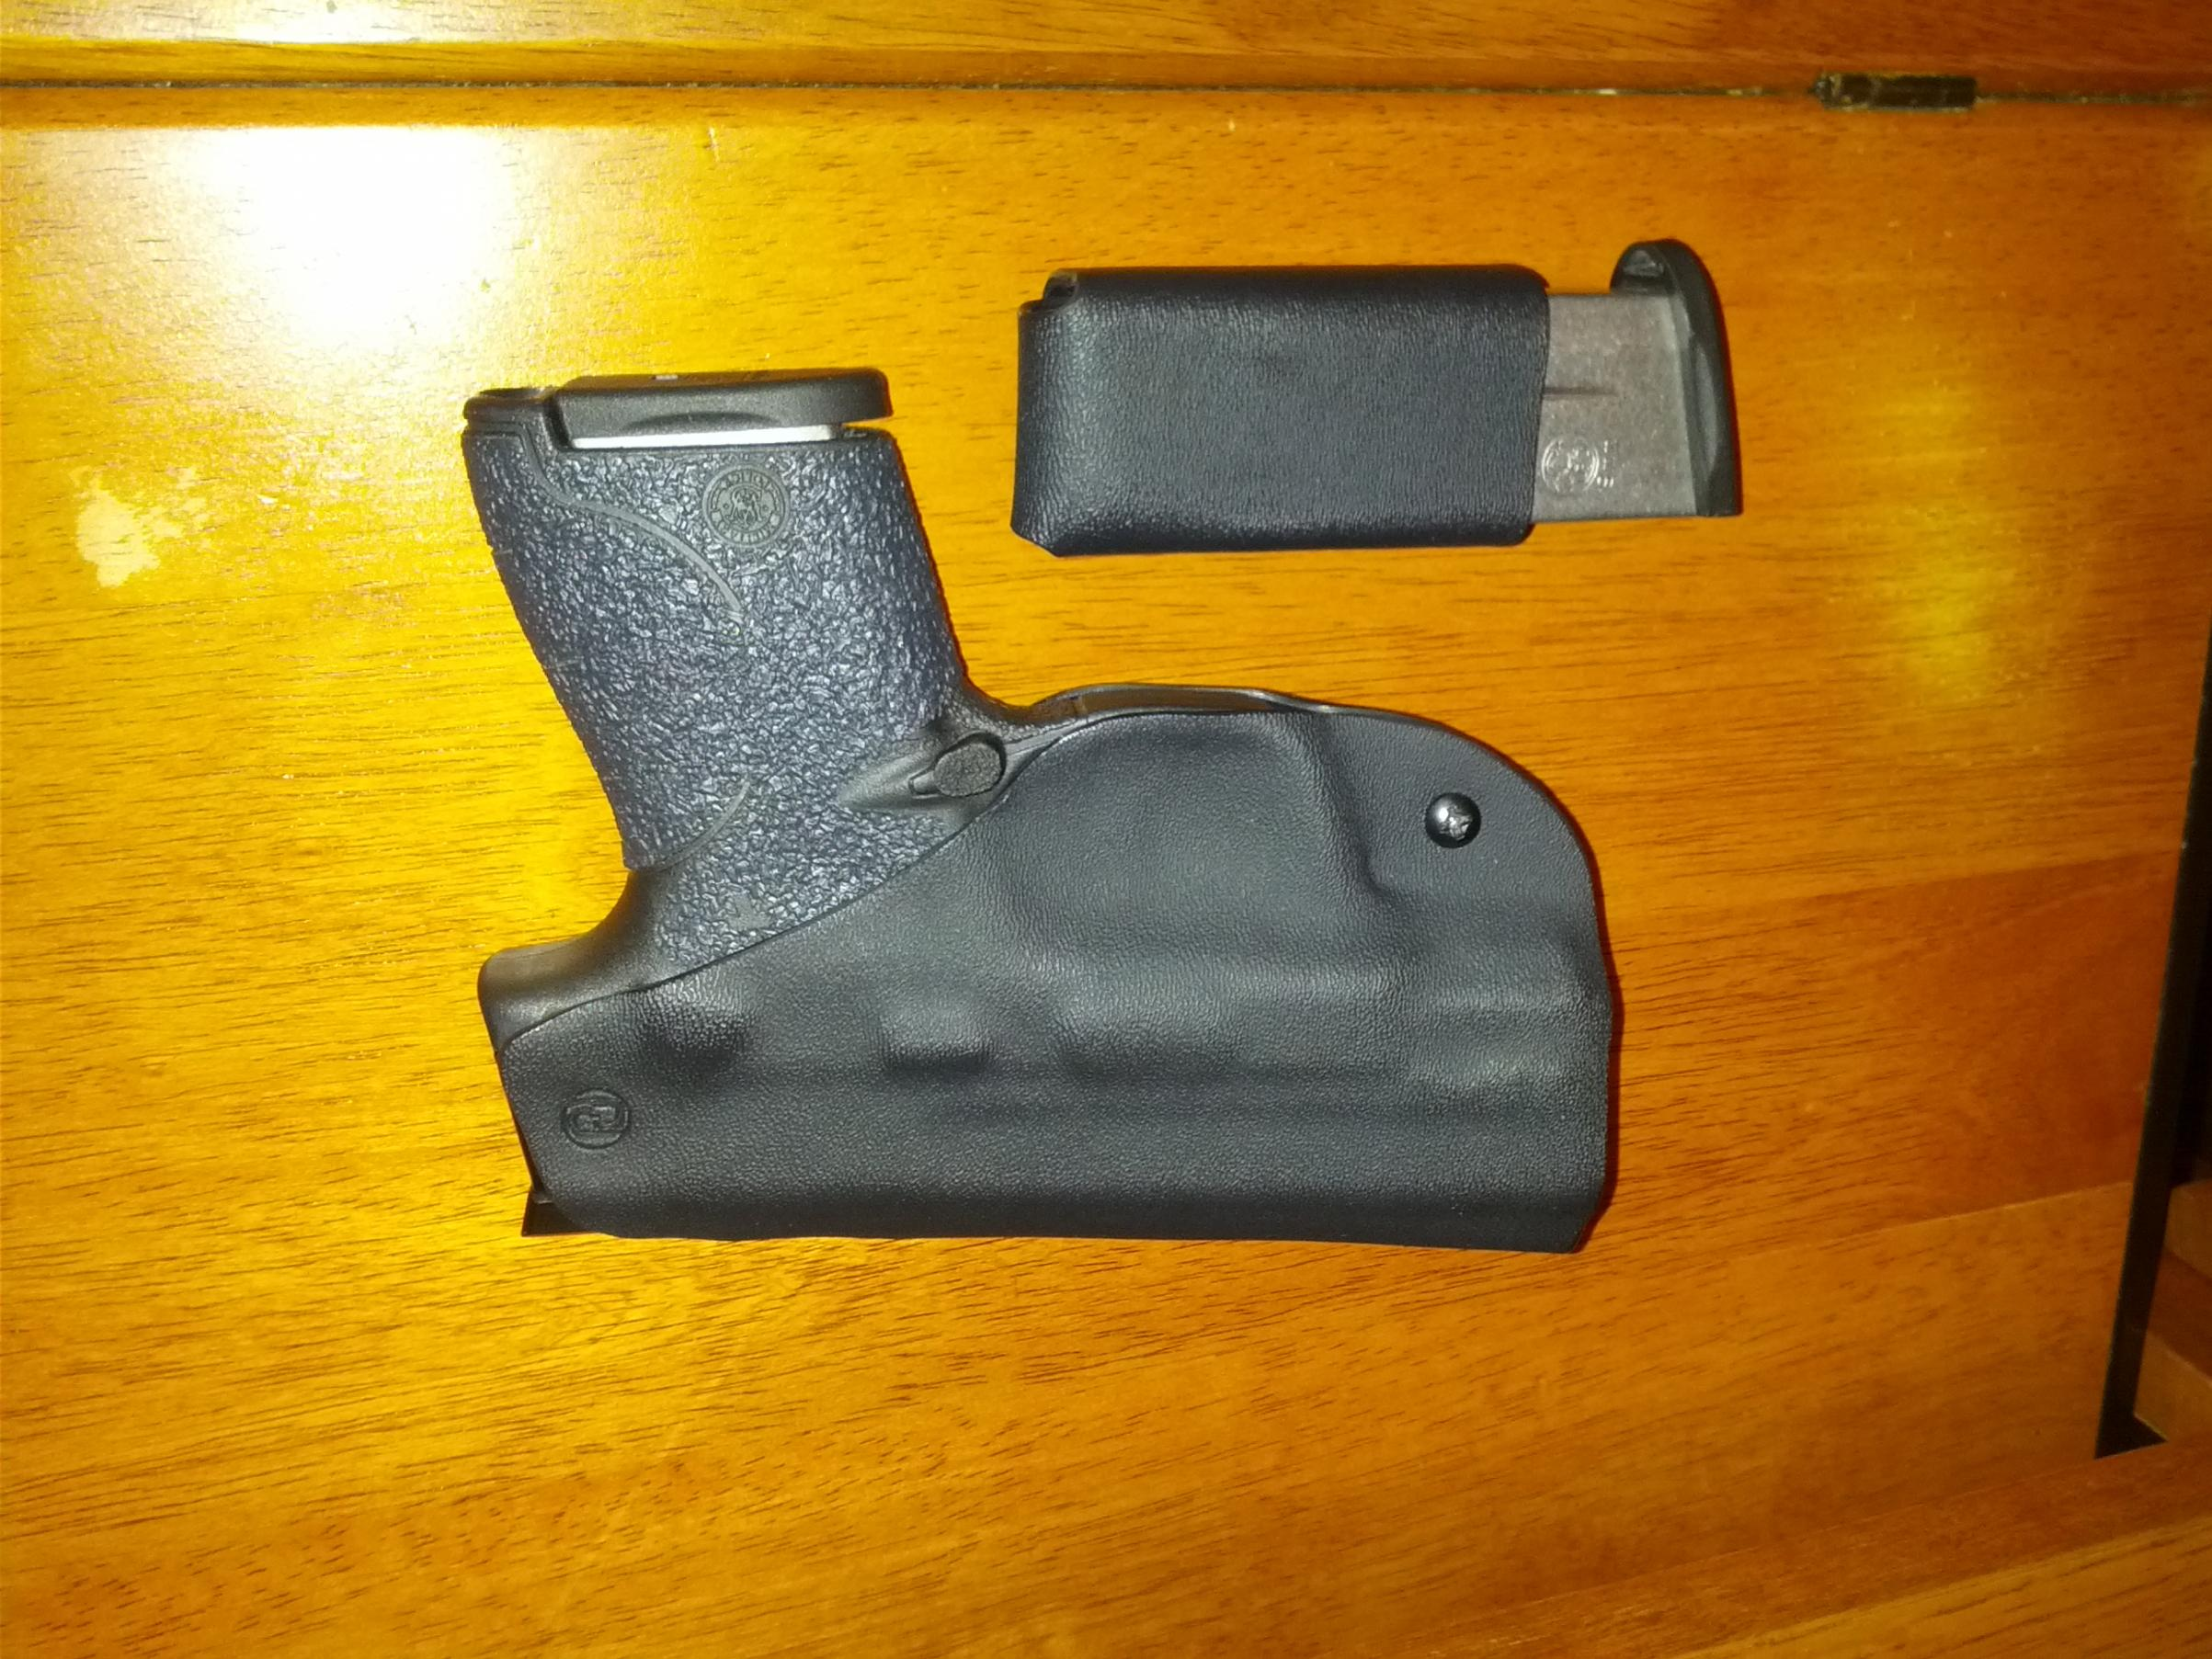 WTS: IWB PJ Holster and Mag Pouch for M&P Shield-img_20130204_204630.jpg